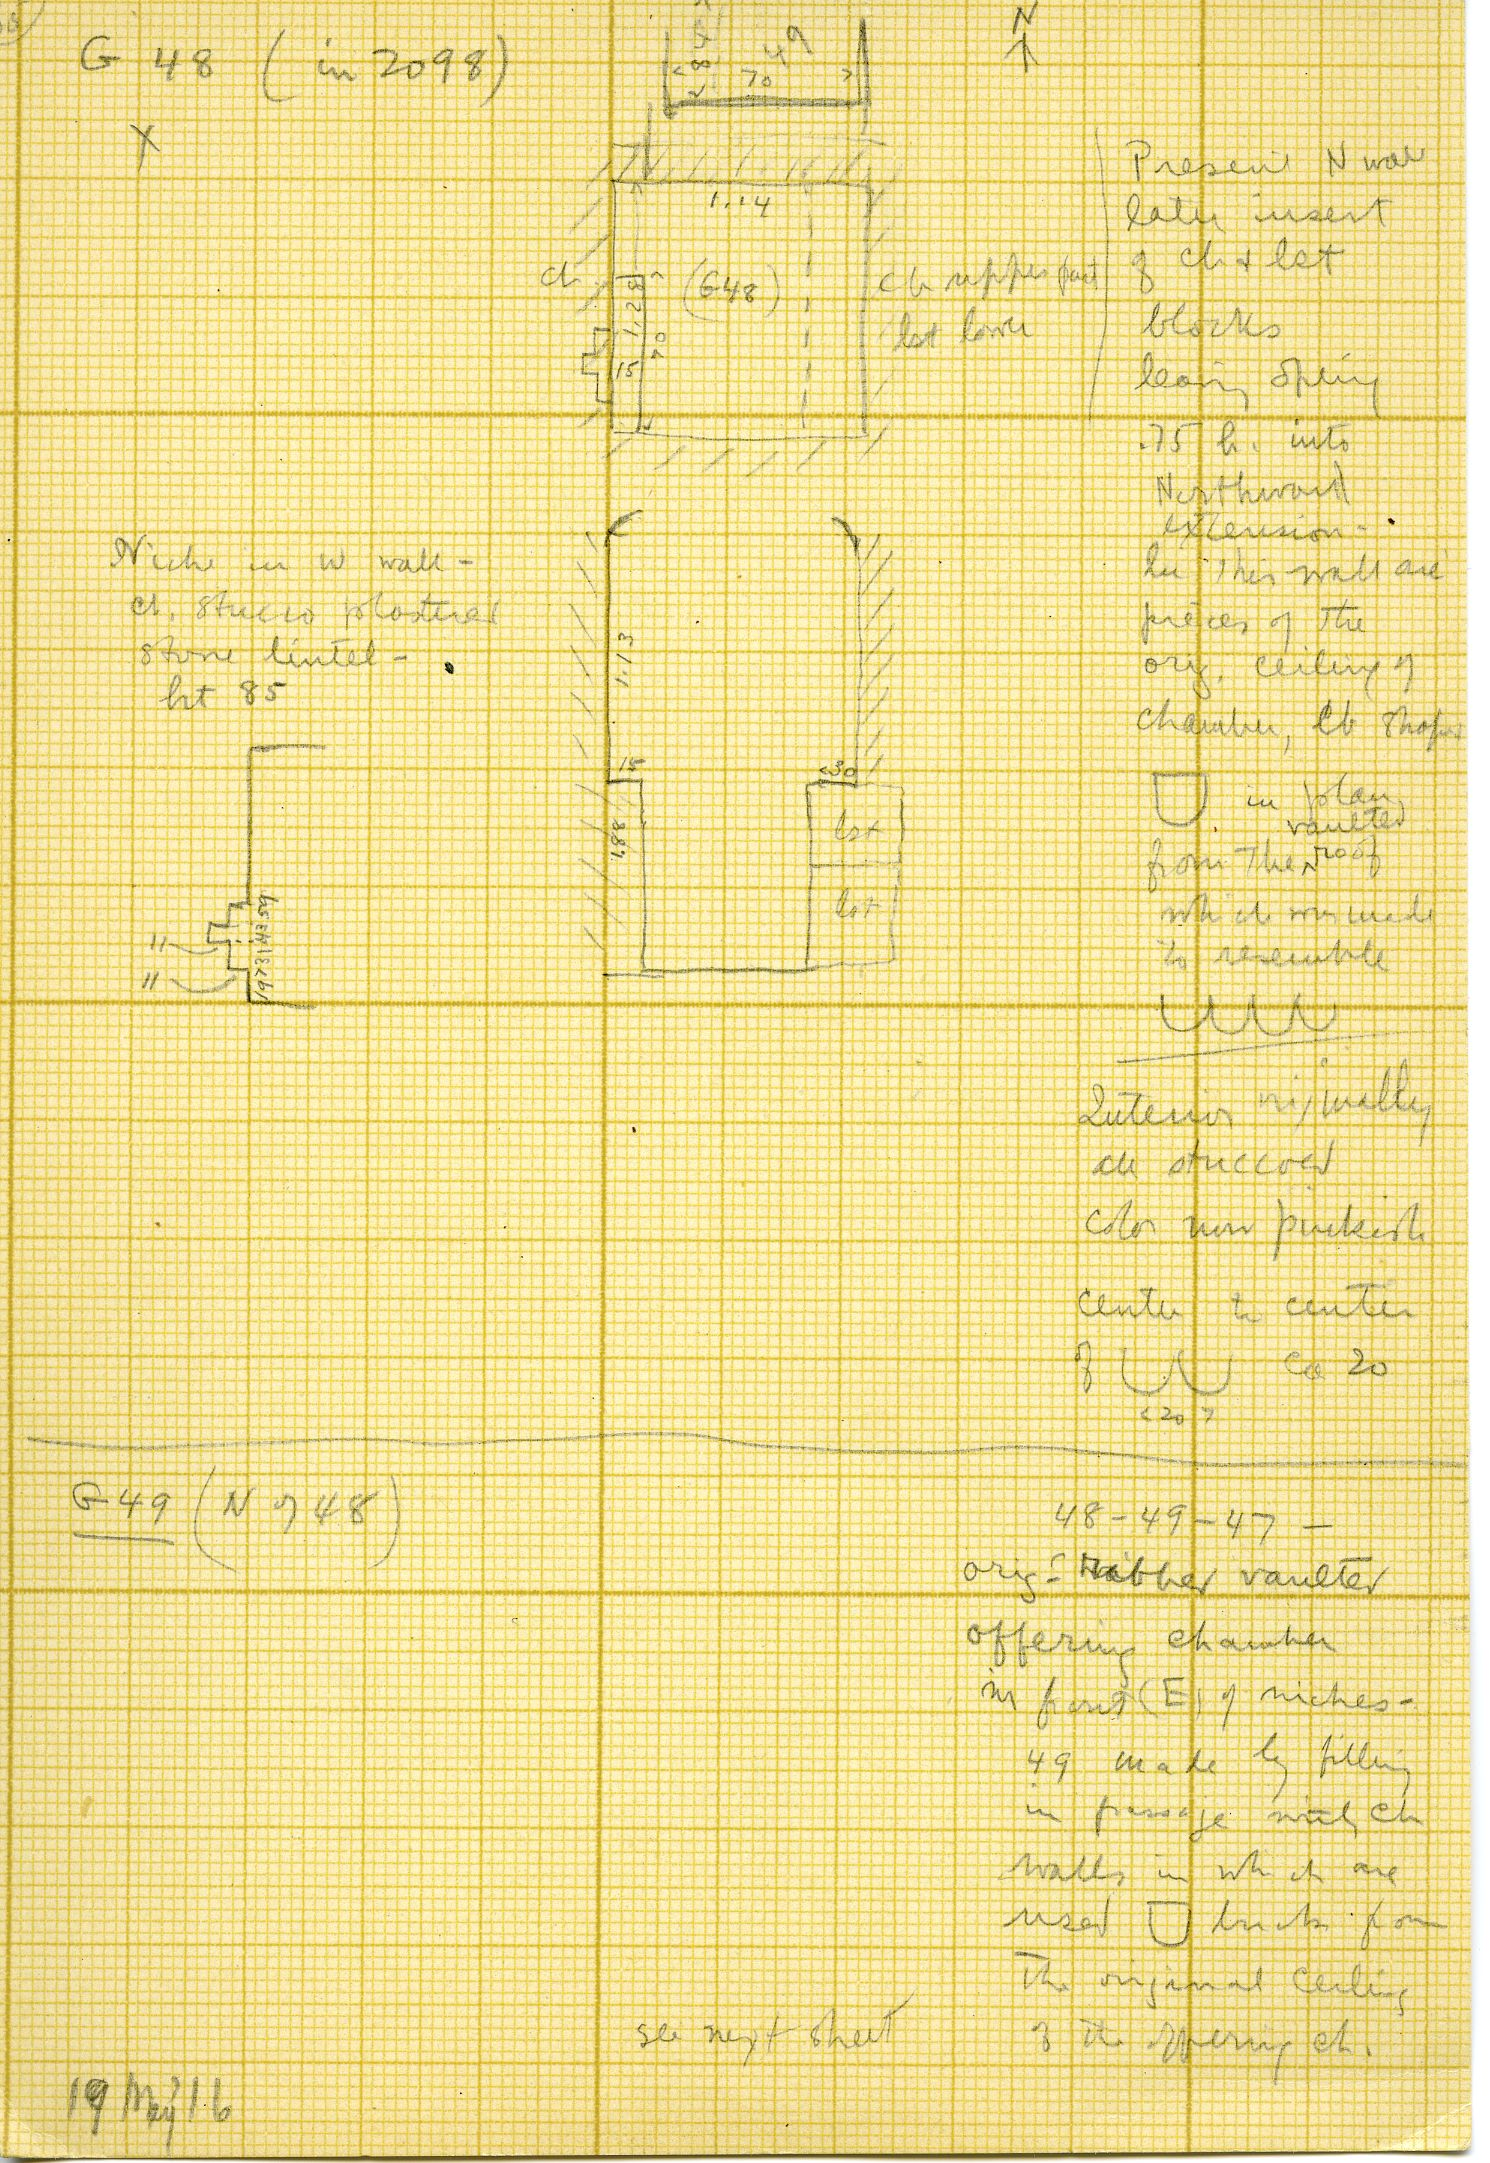 Maps and plans: G 3098, Plans and Sections